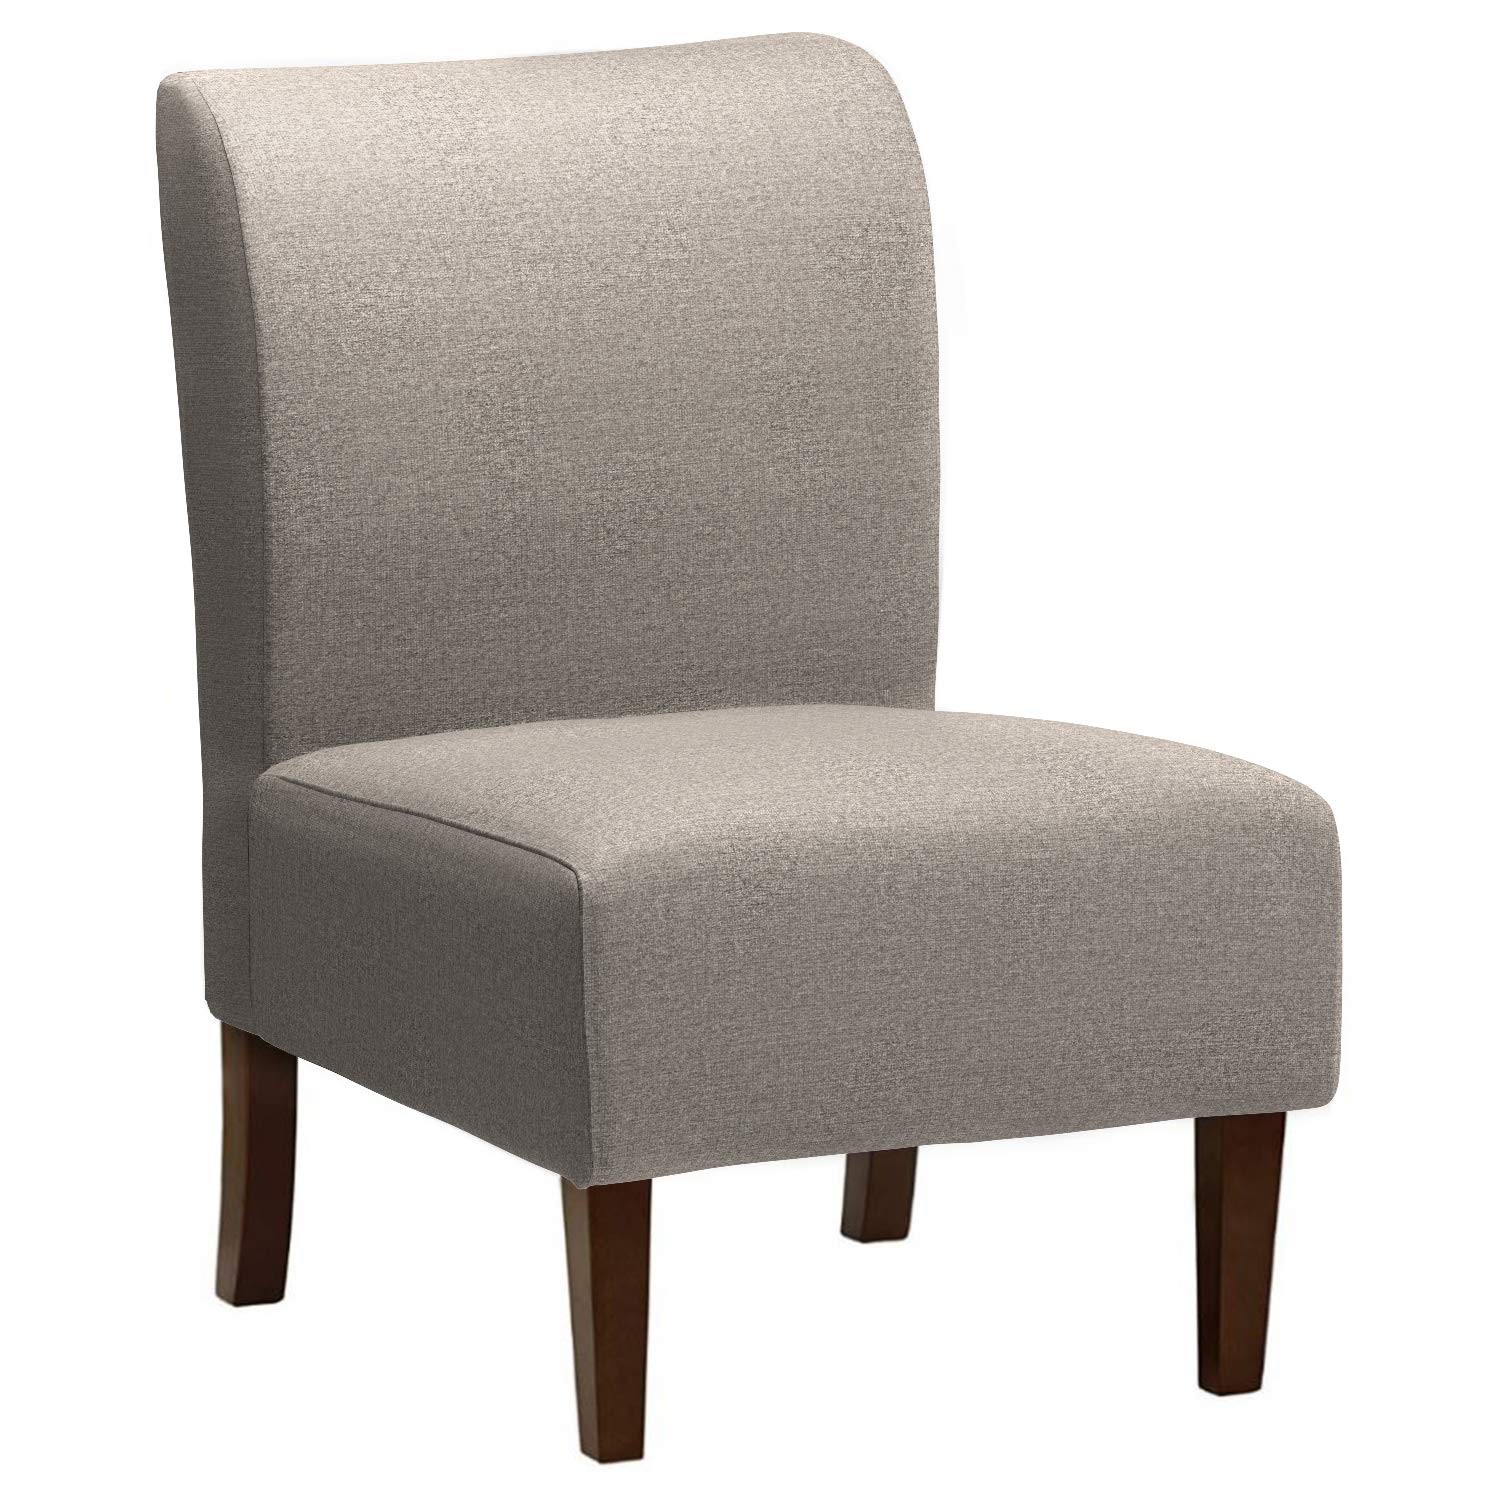 Modern Unique Accent Chairs.Stone Beam Lummi Modern Armless Living Room Accent Chair 21 6 W Storm Grey